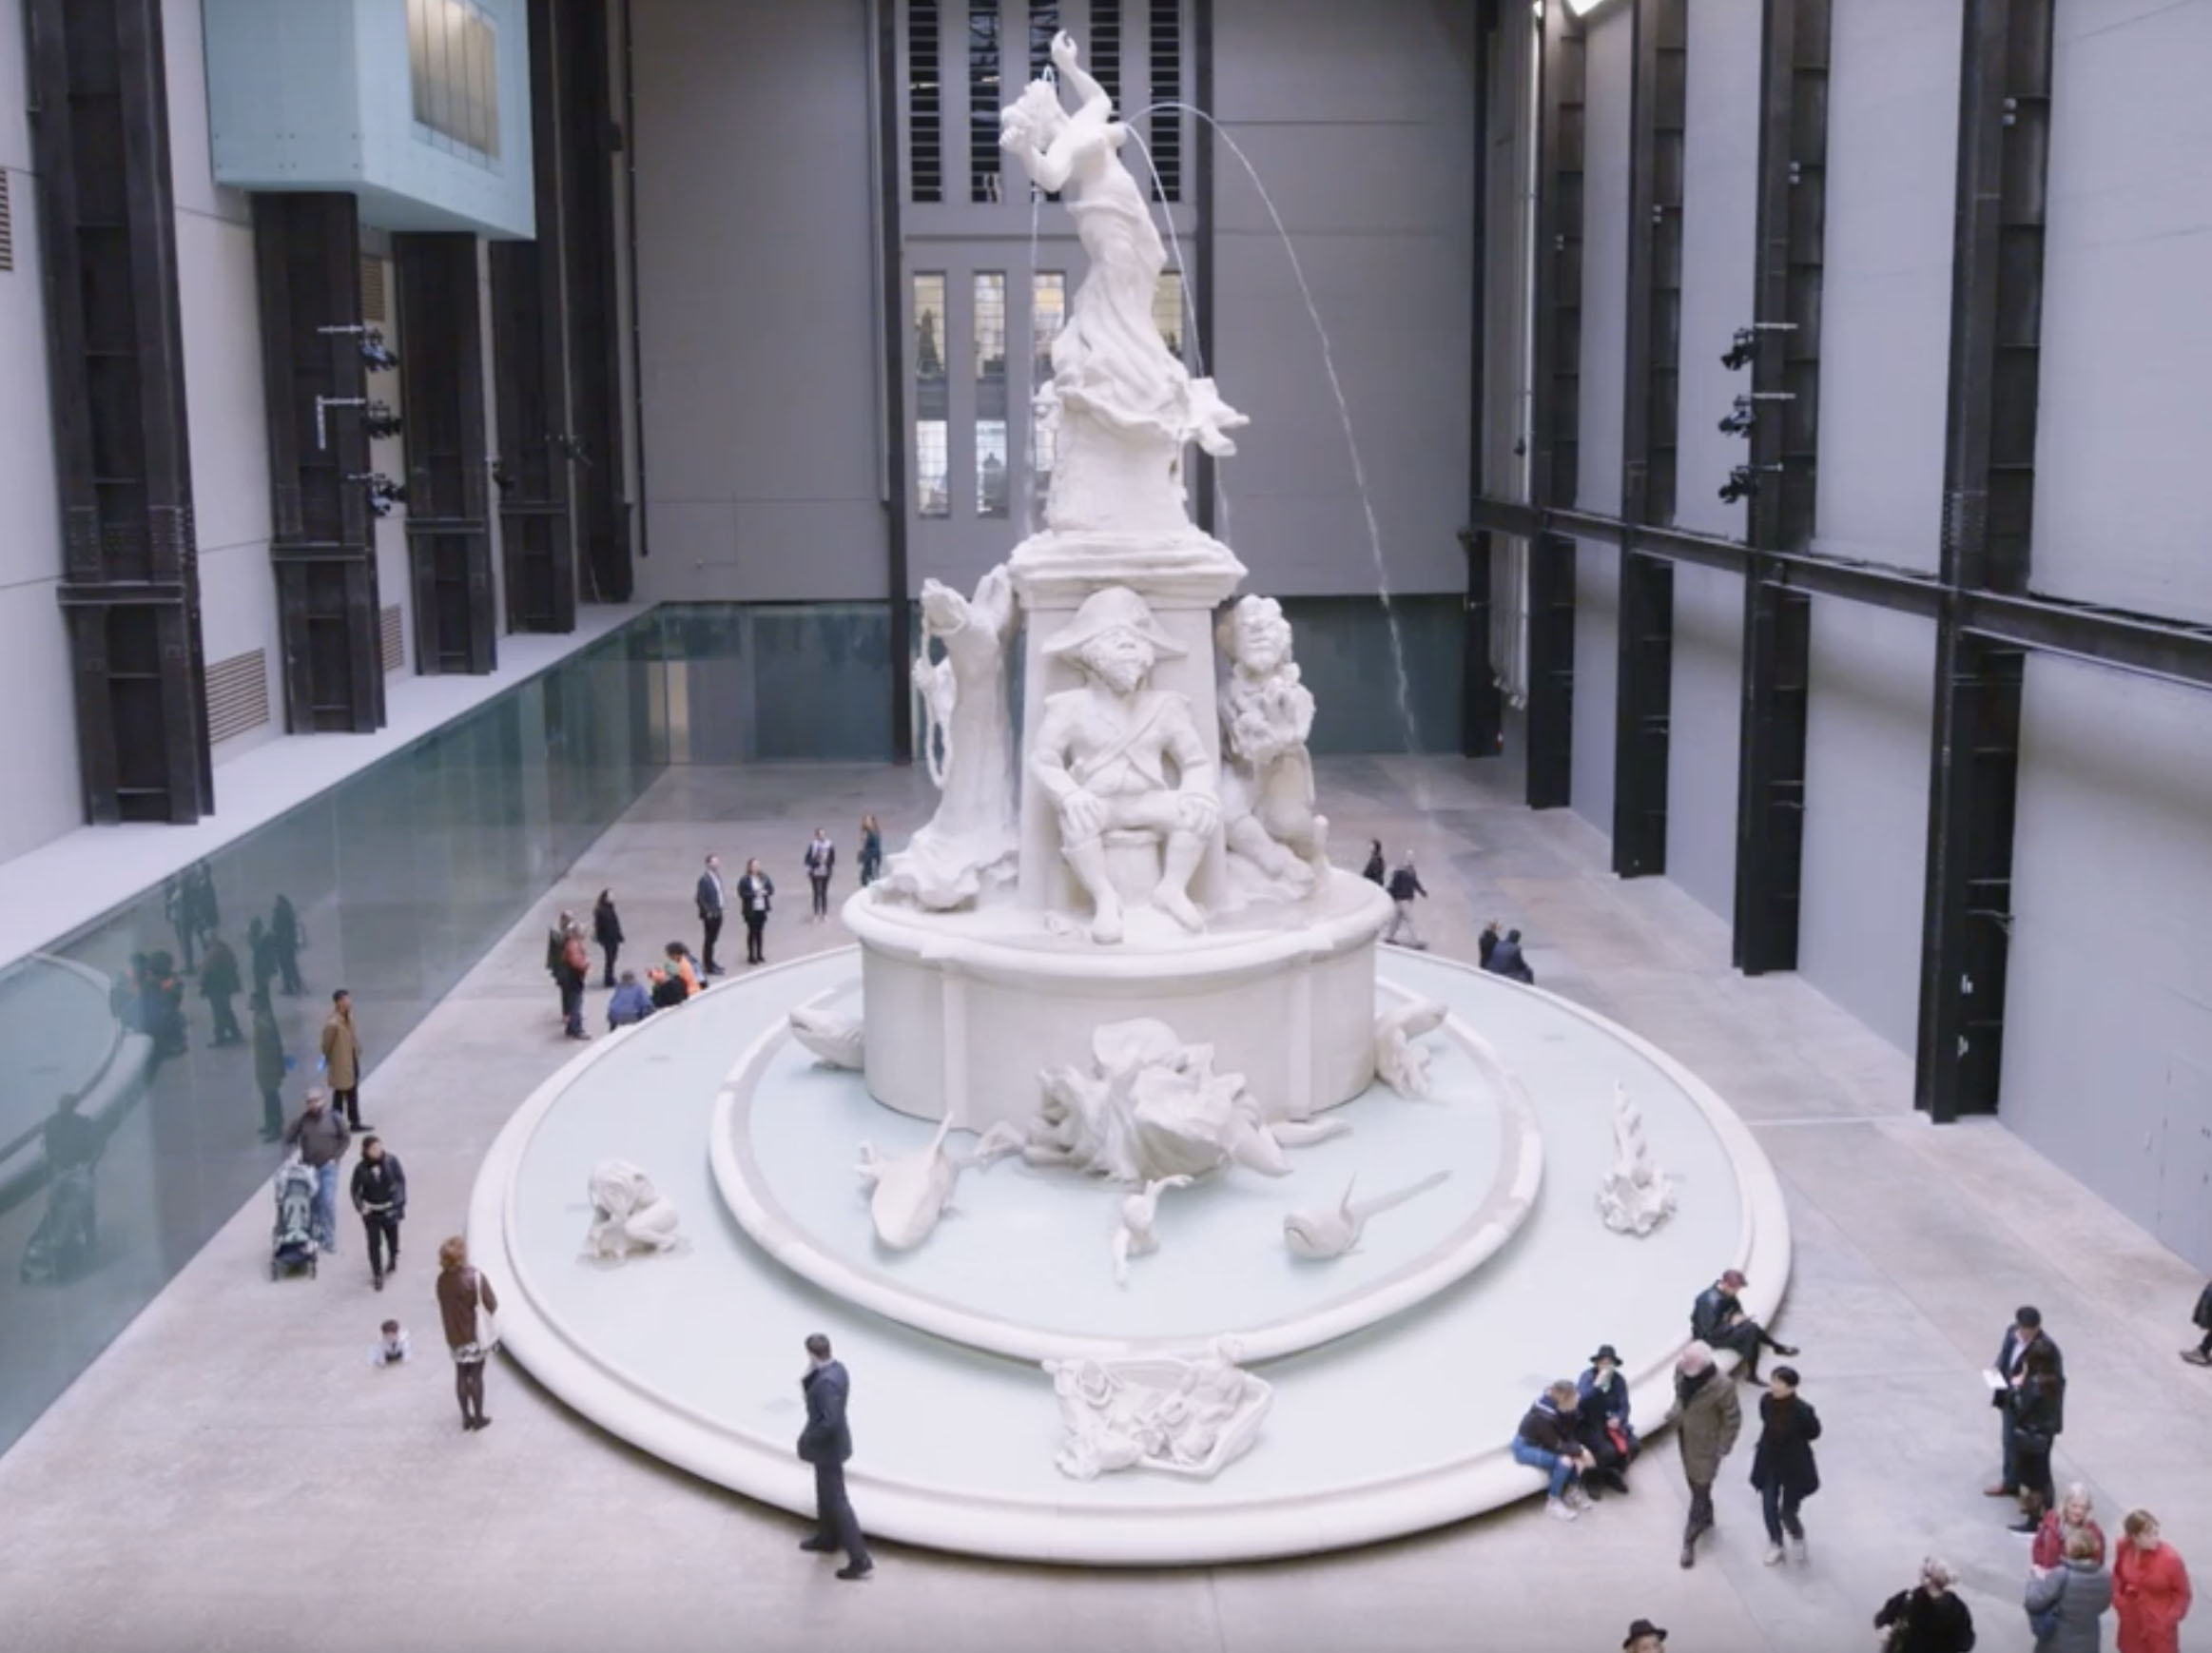 Large, monochrome sculpture in exhibition space designed by Kara Walker